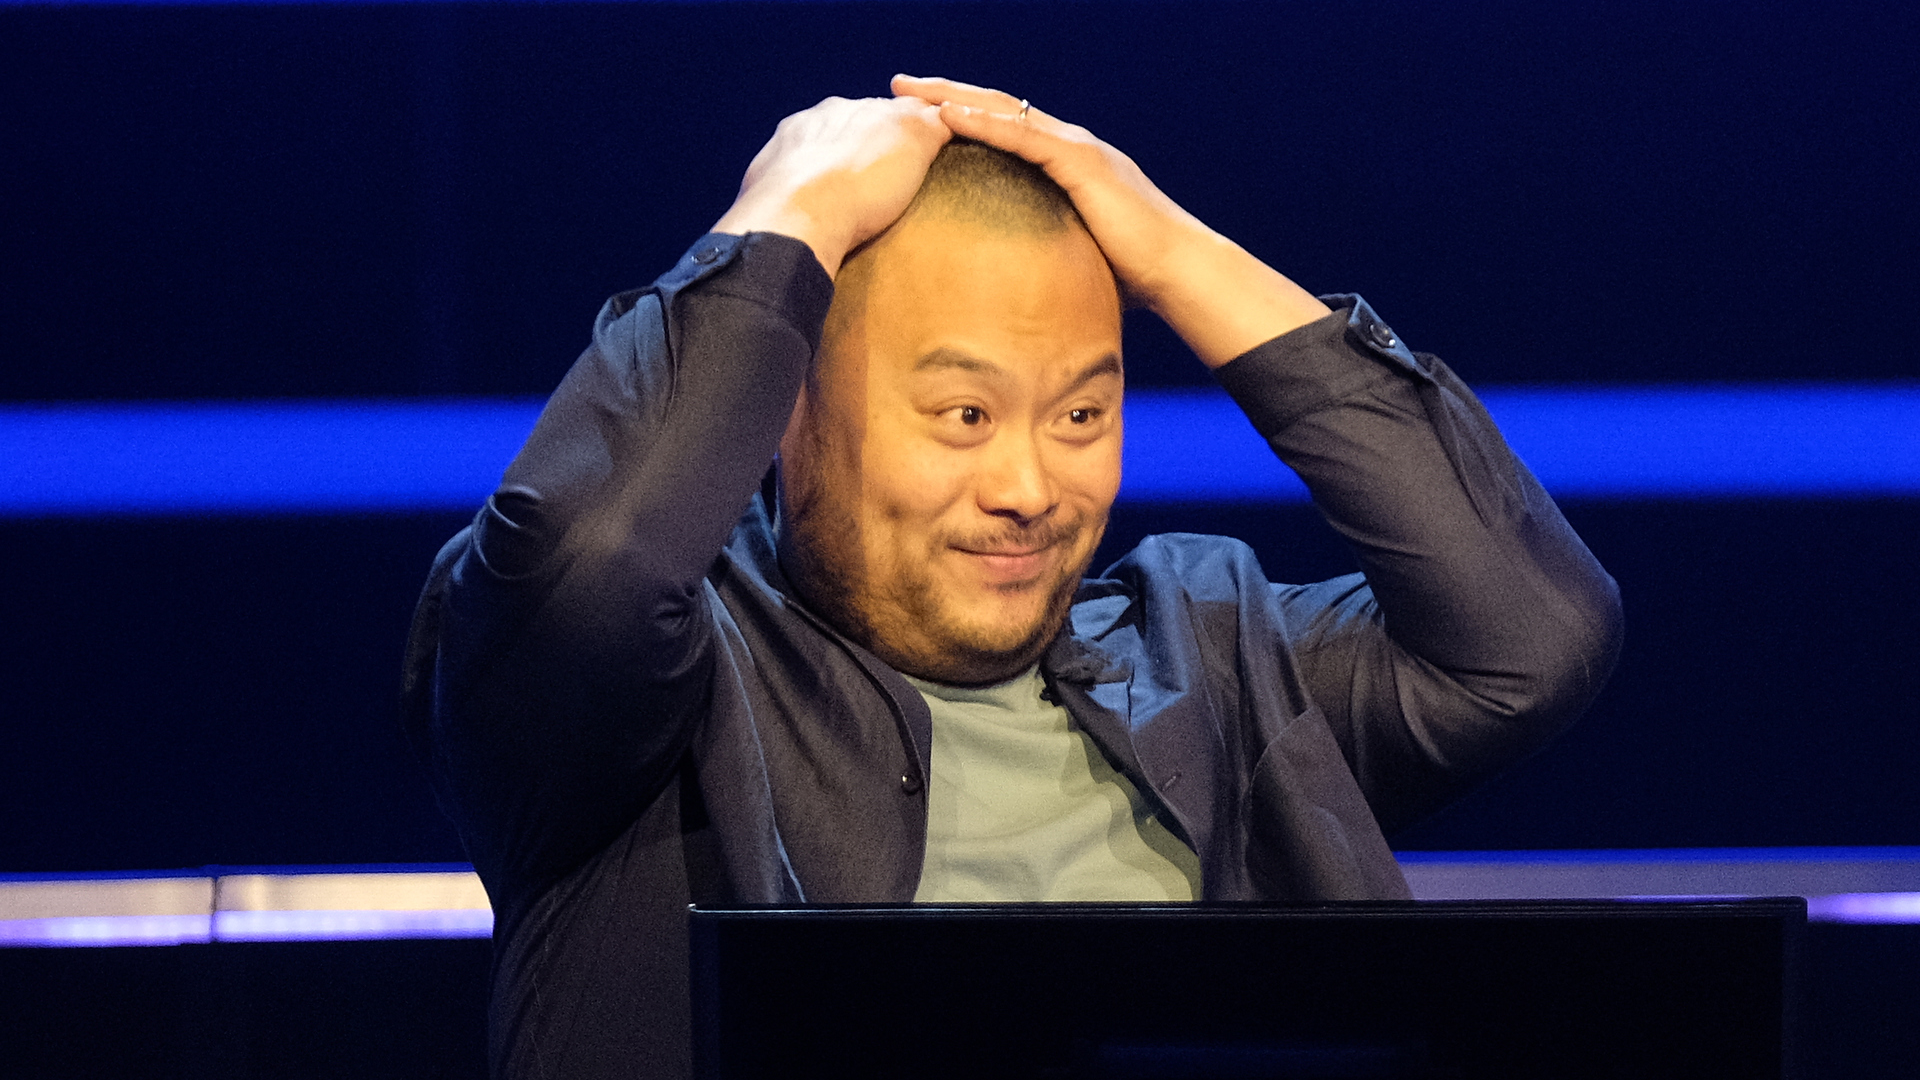 Chef David Chang makes history after winning a million dollars for charity on 'Who Wants To Be A Millionaire?'